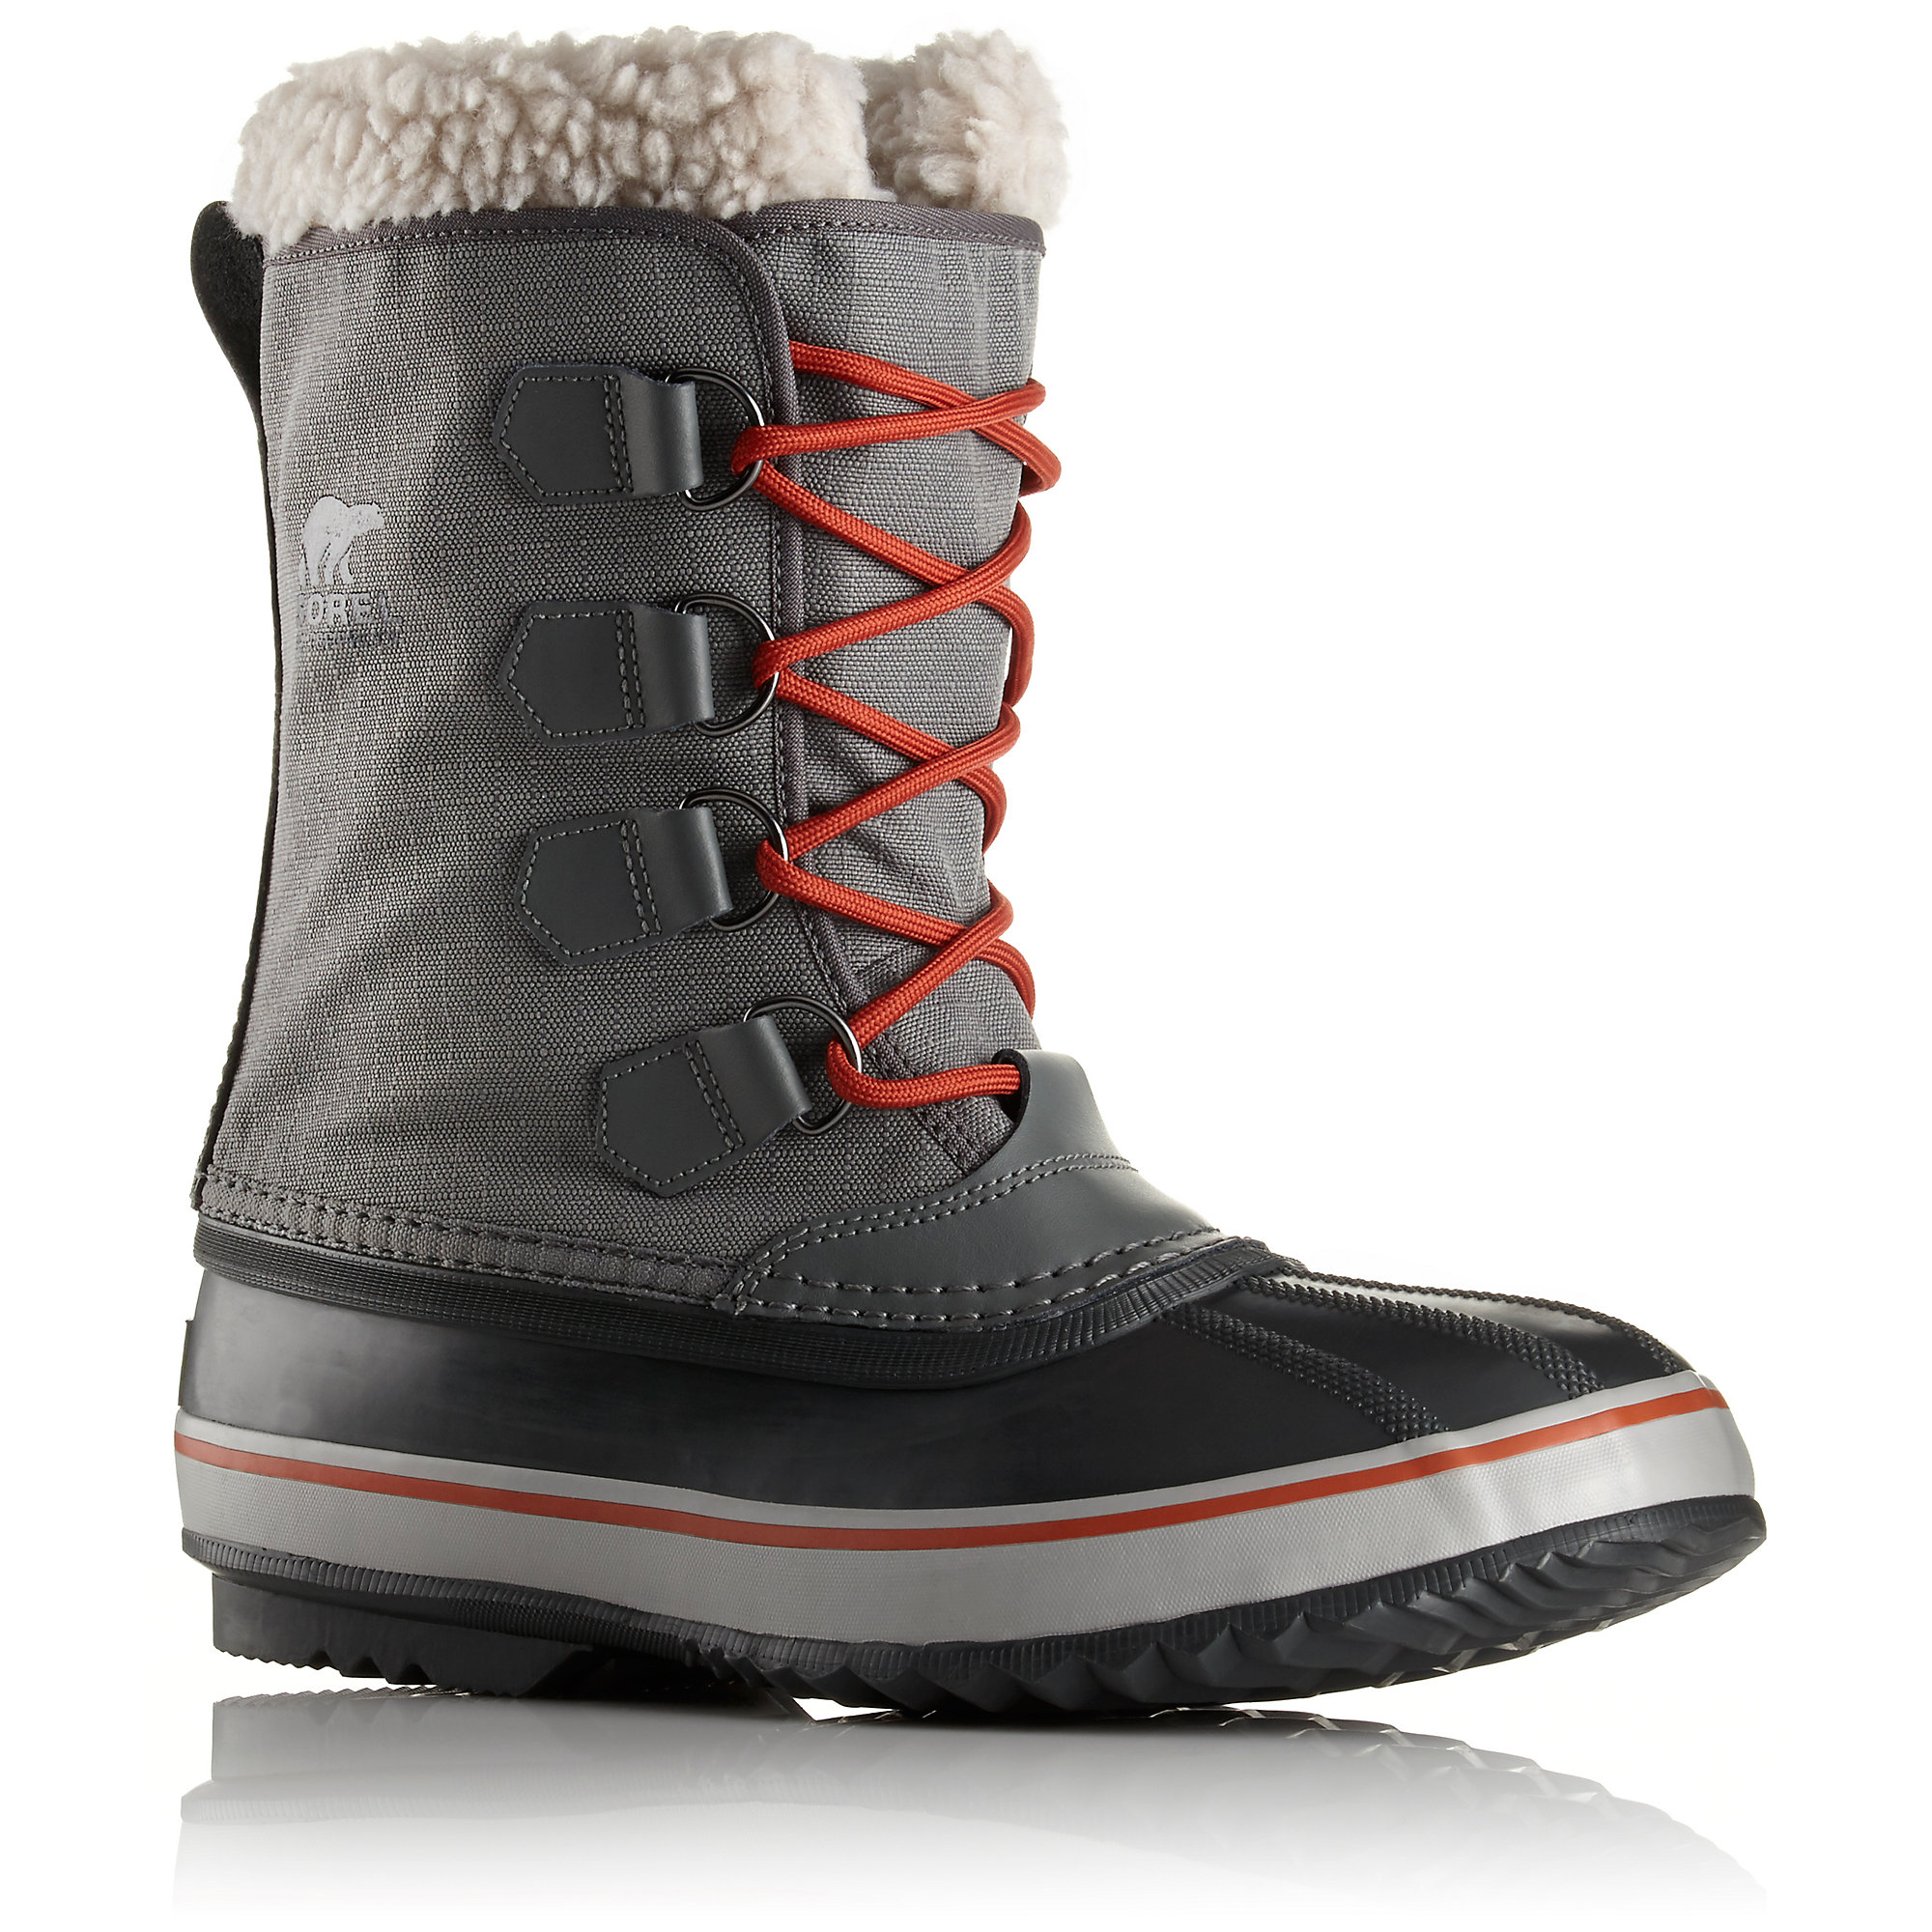 Sorel 1964 PAC  NYLON  078  10-